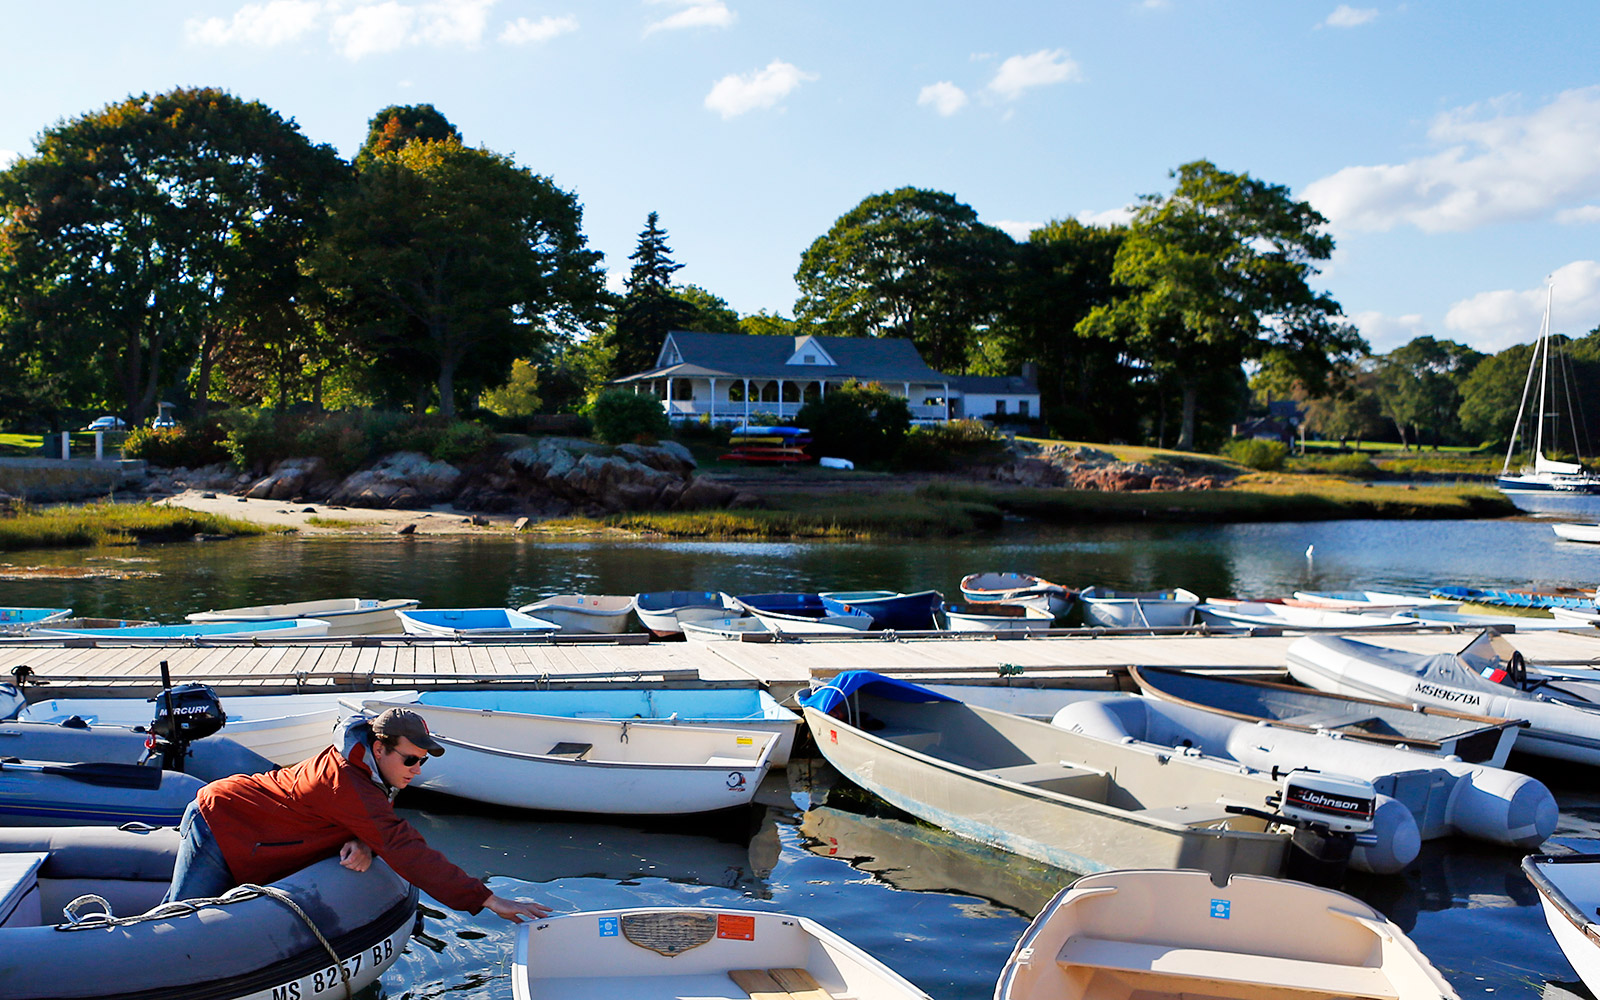 Golden Globe Manchester by the Sea Guide to Massachusetts